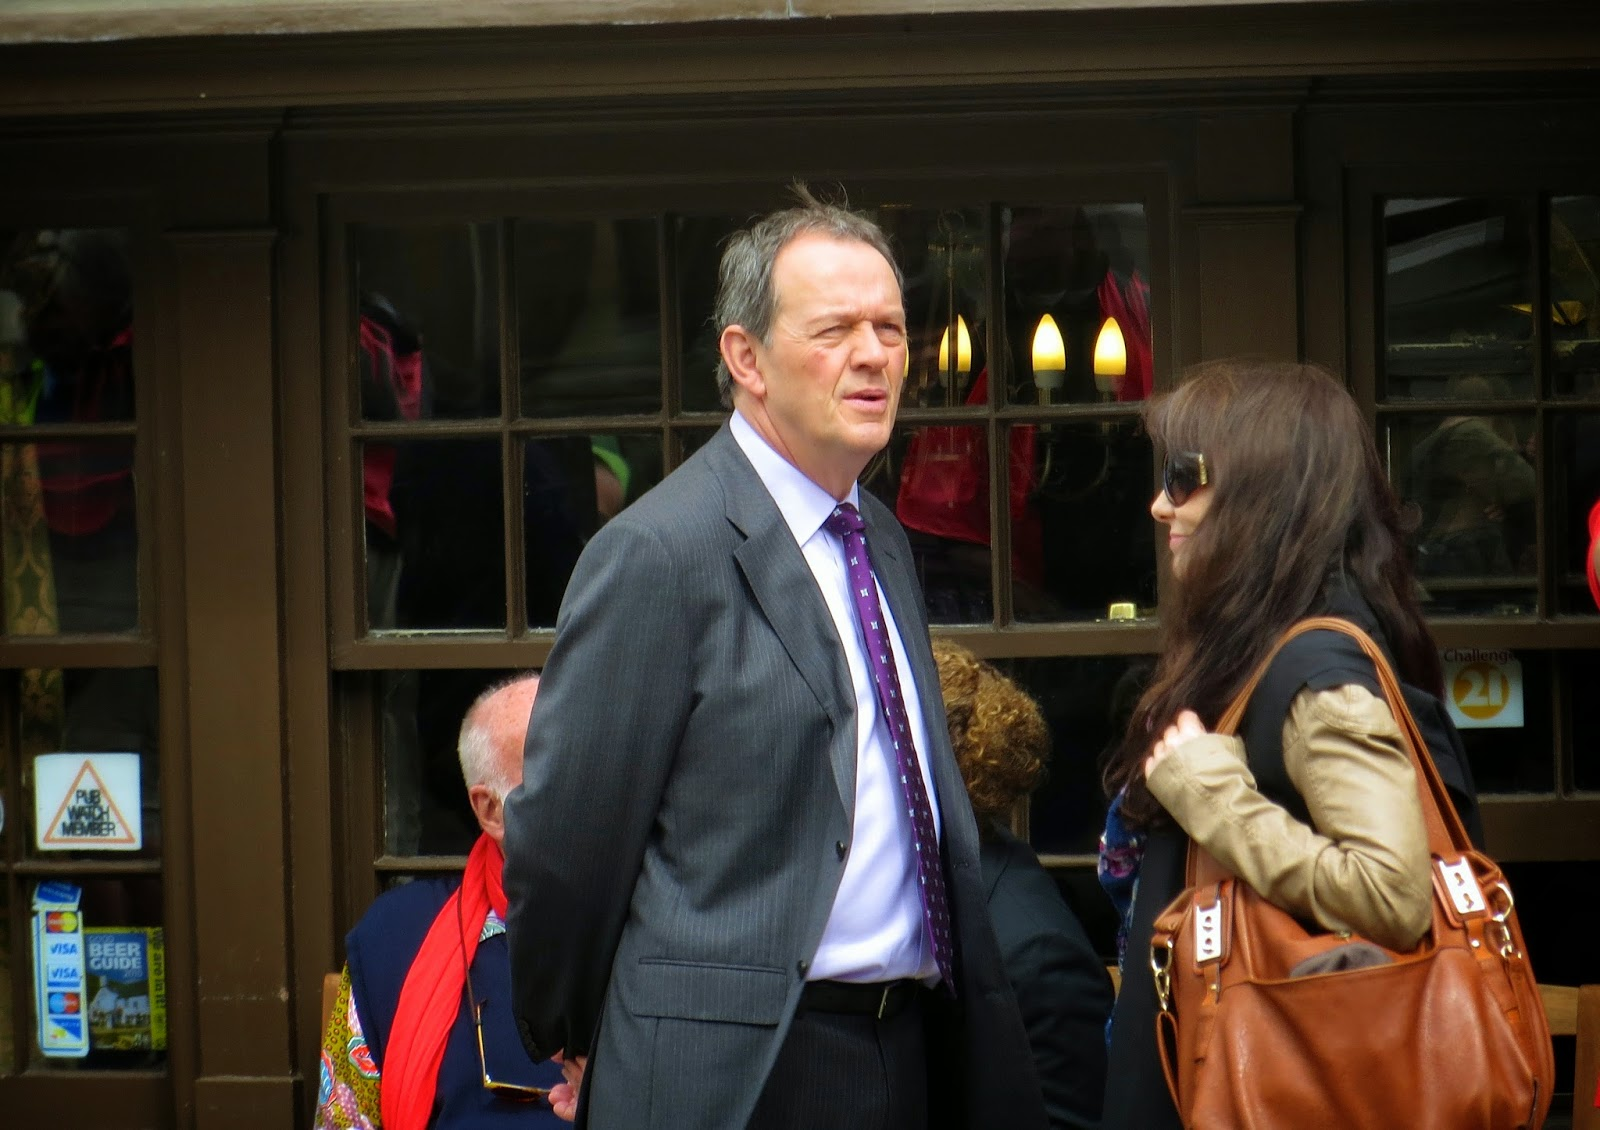 and Curiouser: They're Back -- Kevin Whately Filming Lewis in Oxford